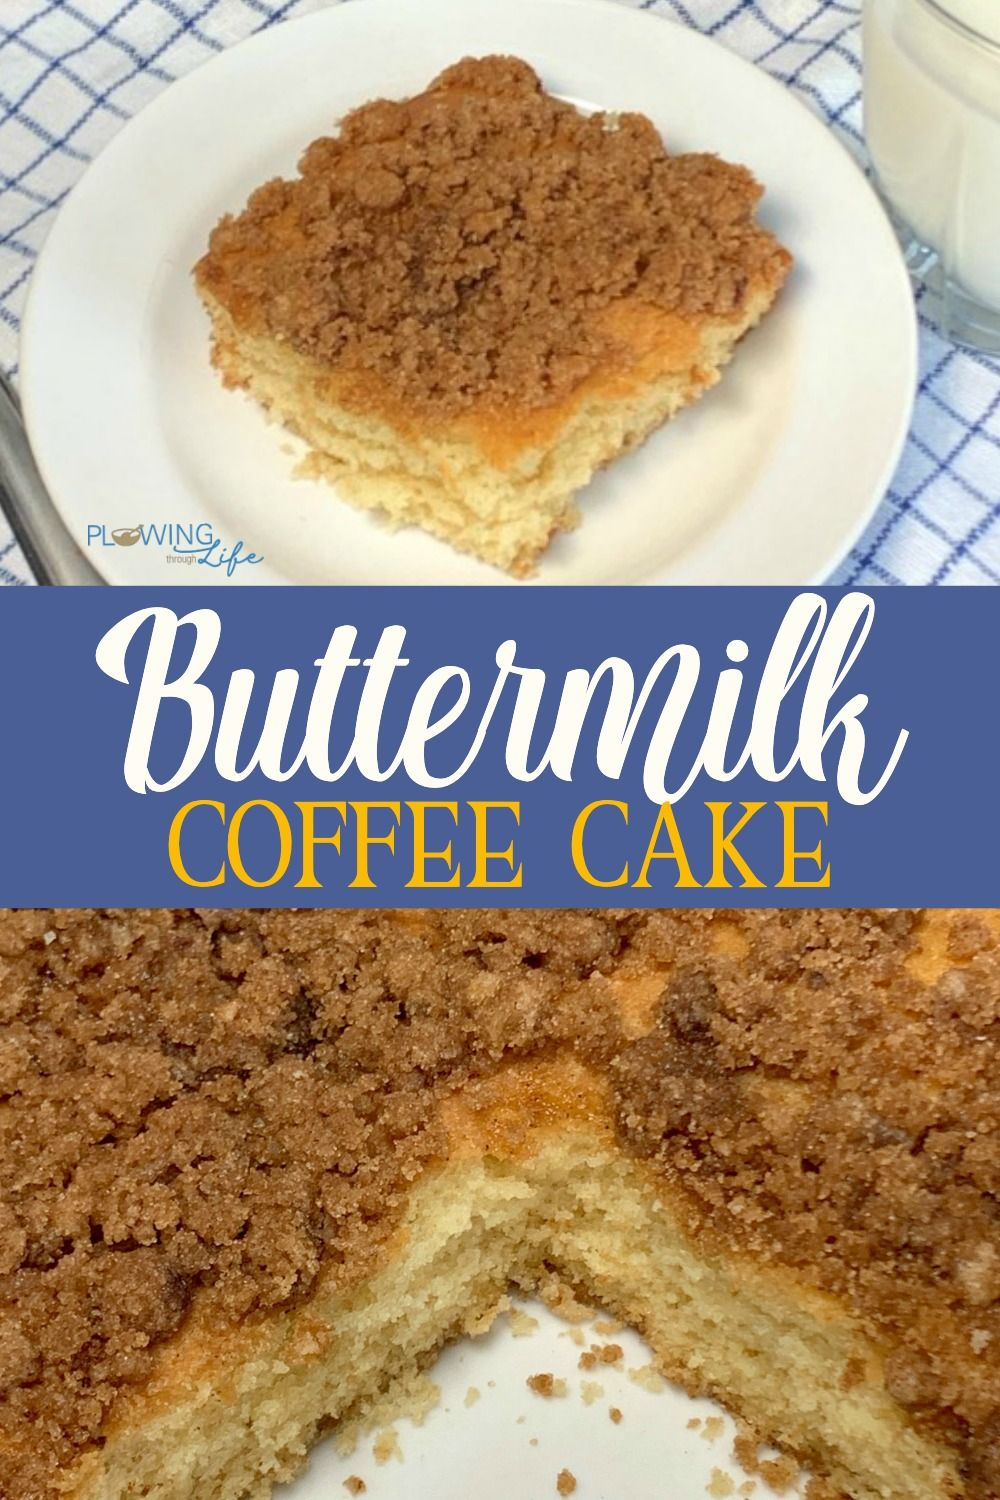 Buttermilk Coffee Cake Buttermilk Coffee Cake Buttermilk Recipes Homemade Buttermilk